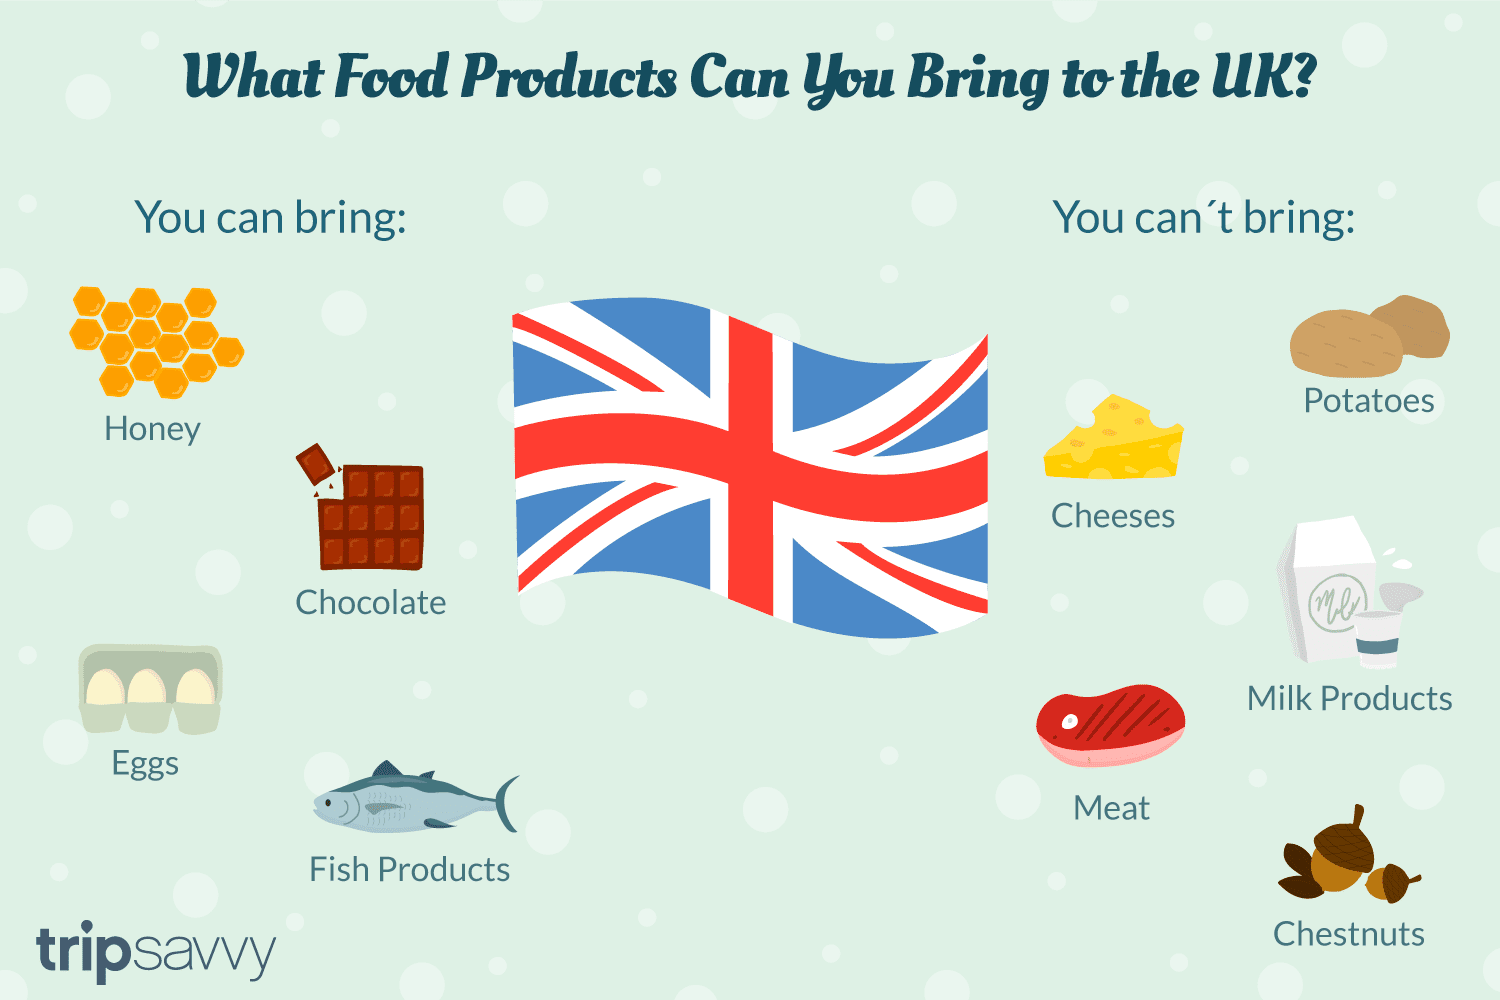 UK Customs Regulations - Bringing Foods to the UK?